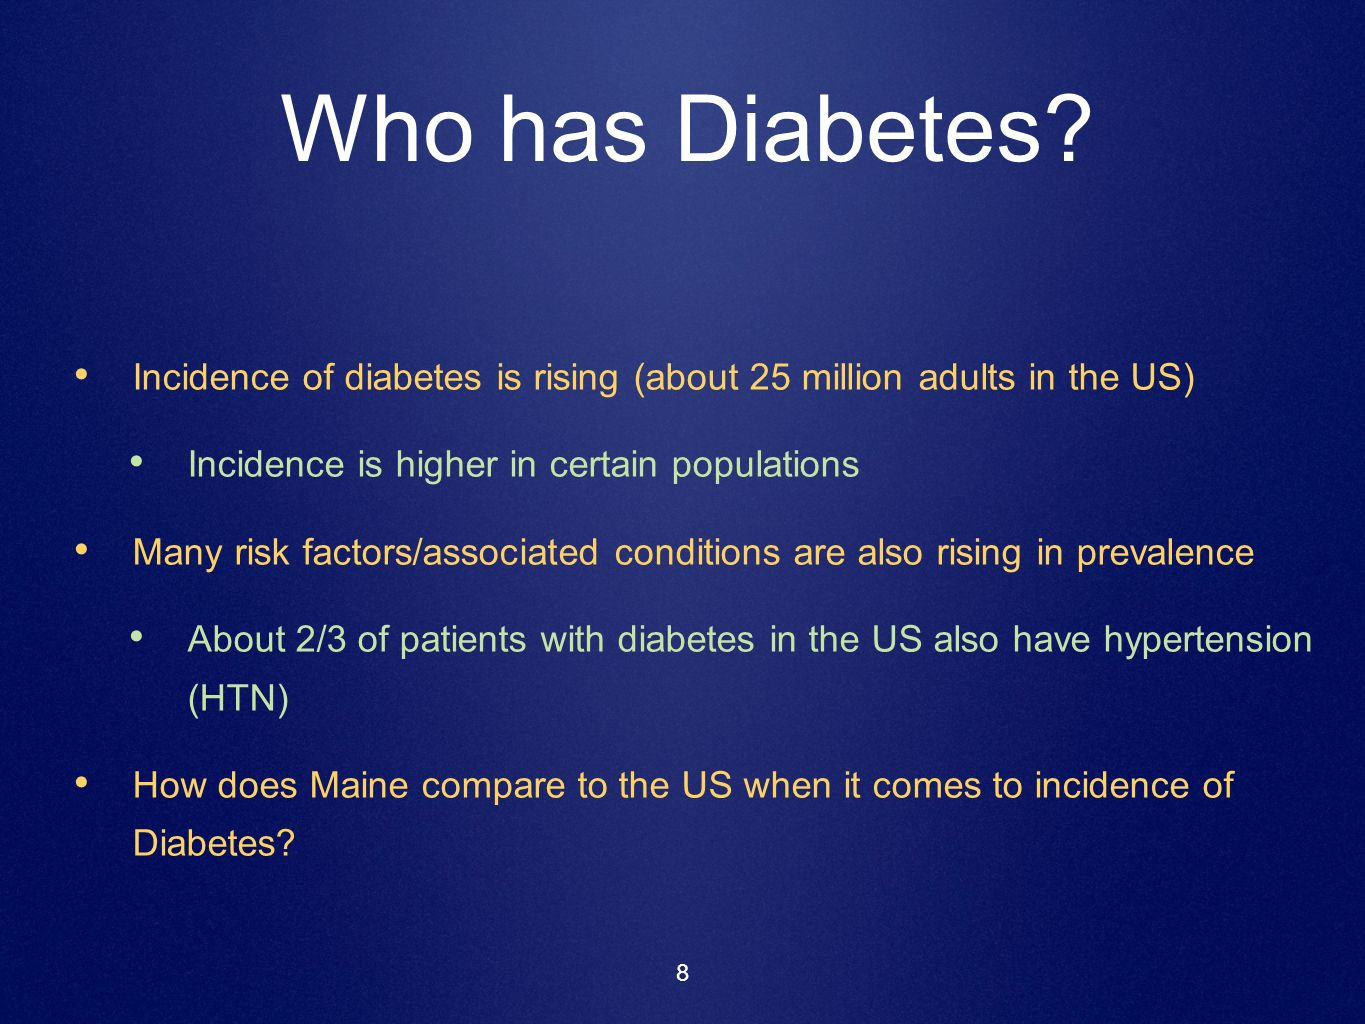 Who has Diabetes Incidence of diabetes is rising (about 25 million adults in the US) Incidence is higher in certain populations.